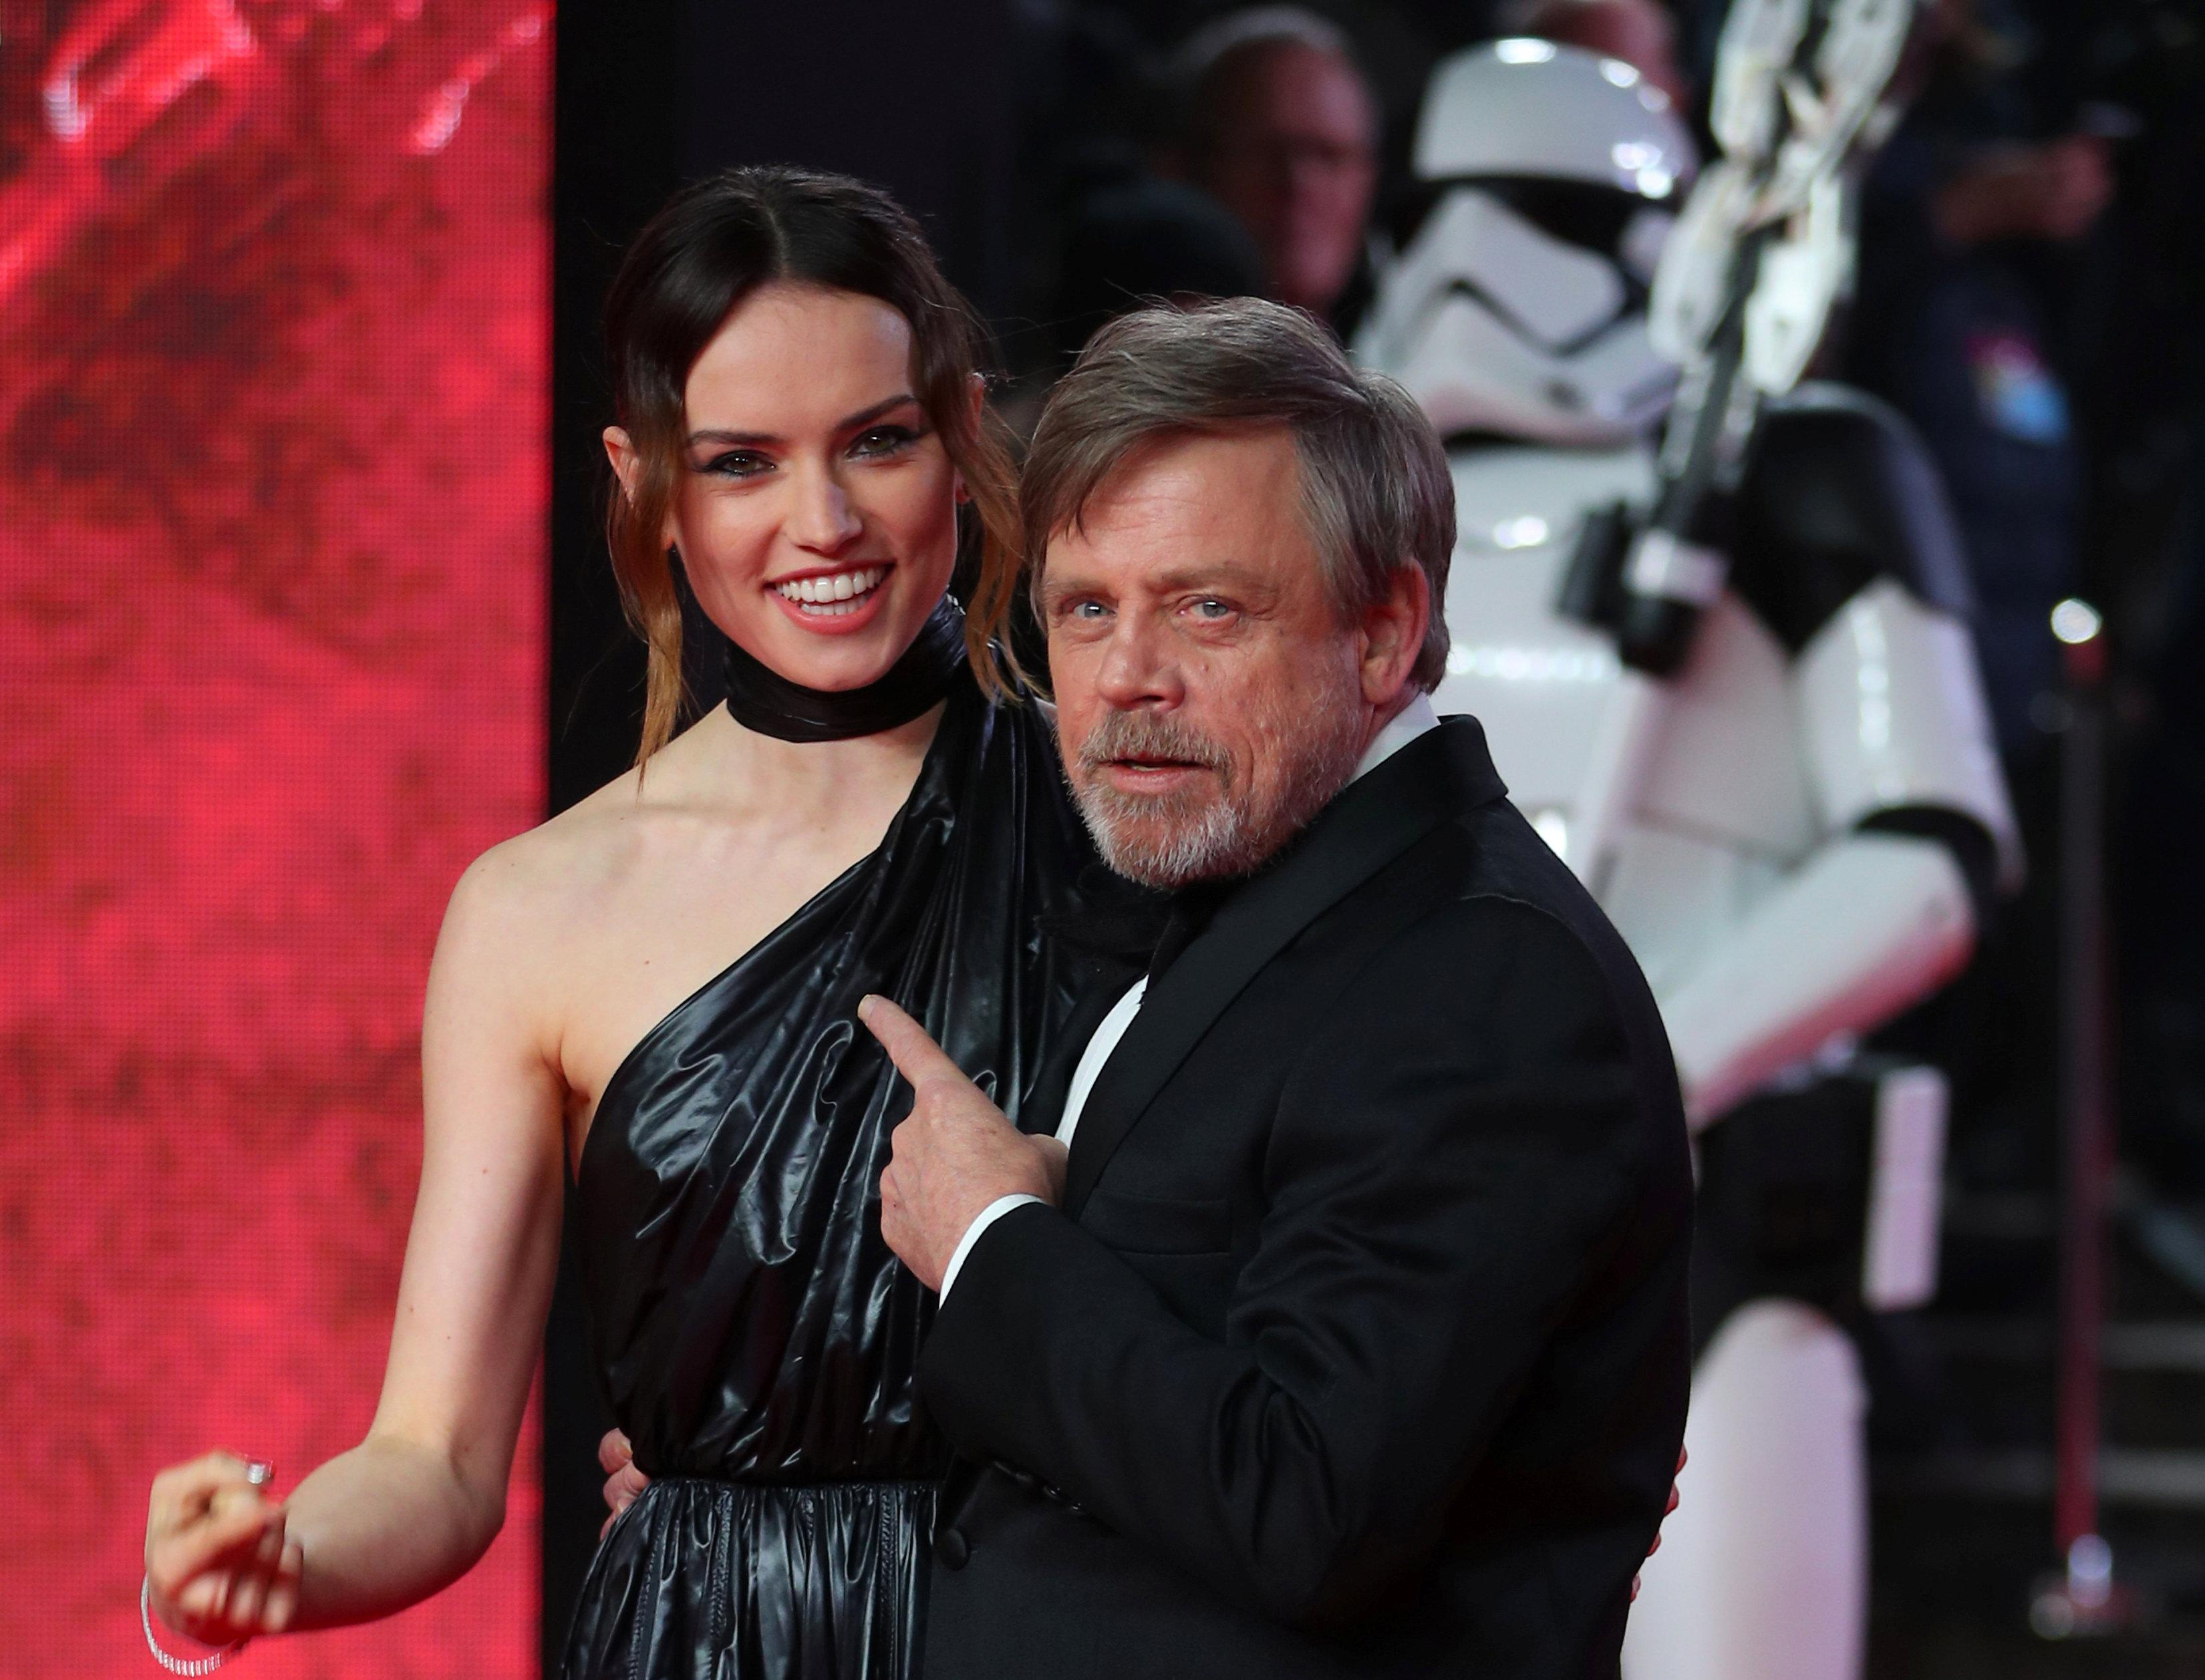 Actors Daisy Ridley and Mark Hamill pose for photographers as they arrive for the European Premiere of 'Star Wars: The Last Jedi', at the Royal Albert Hall in central London, Britain December 12, 2017. Hannah McKay